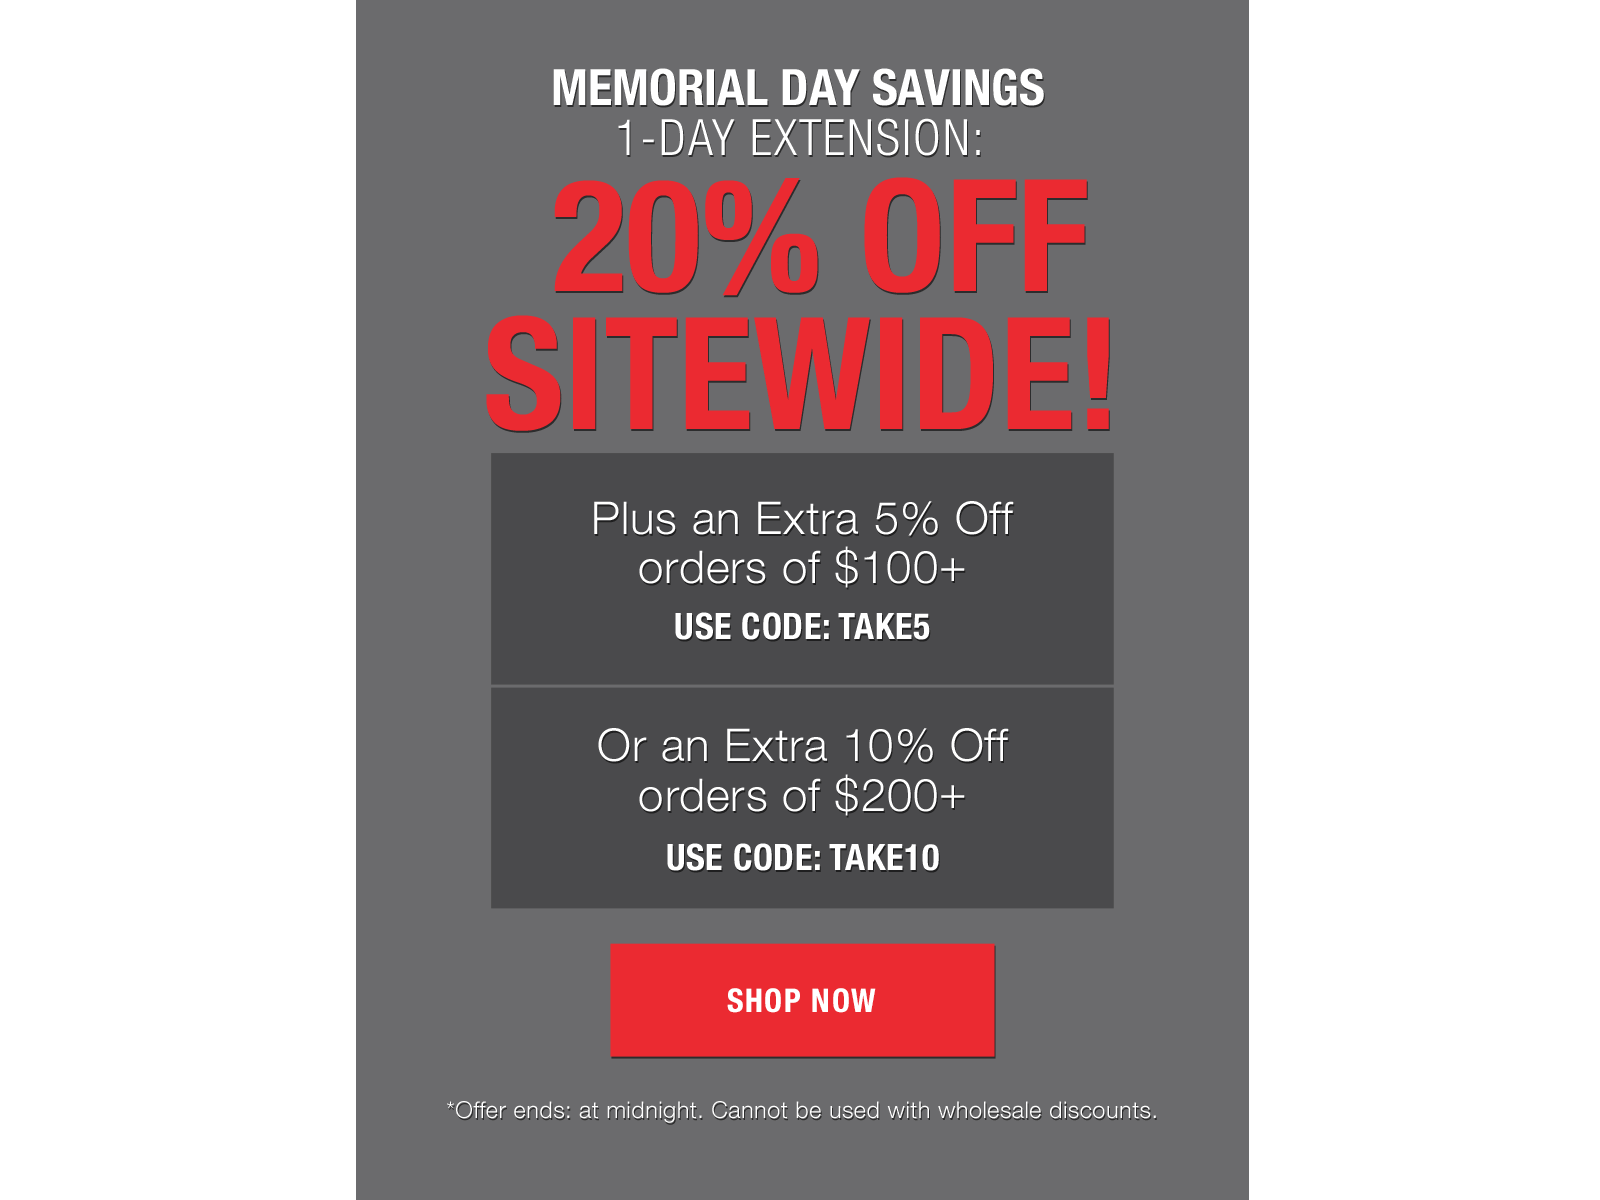 1-day Extension: 20% off sitewide + an extra 5% off $100+ with code TAKE5 or extra 10% off $200+ with code TAKE10